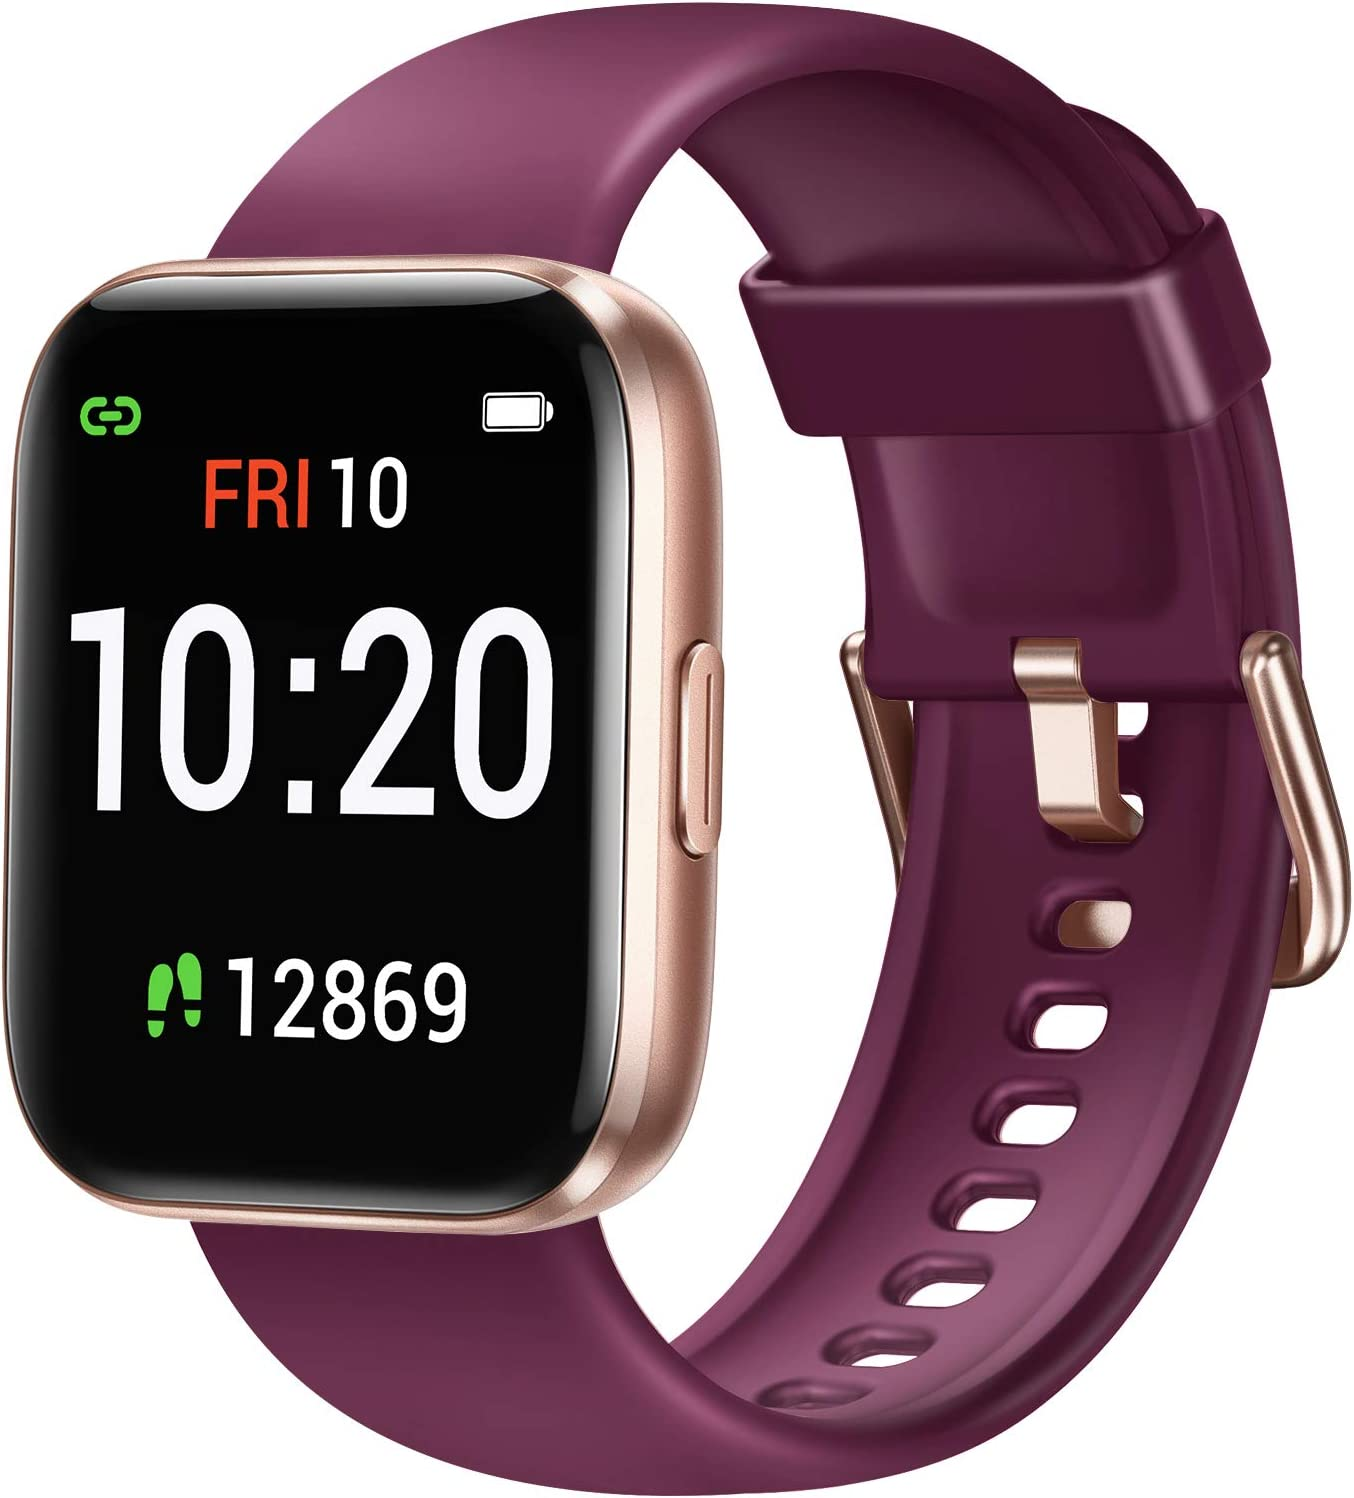 Letsfit Smart Watch for Android Phones Compatible with iPhone Samsung, Fitness Tracker with Blood Oxygen Saturation & Heart Rate Monitor, IP68 Waterproof Cardio Watch for Women Men, Purple